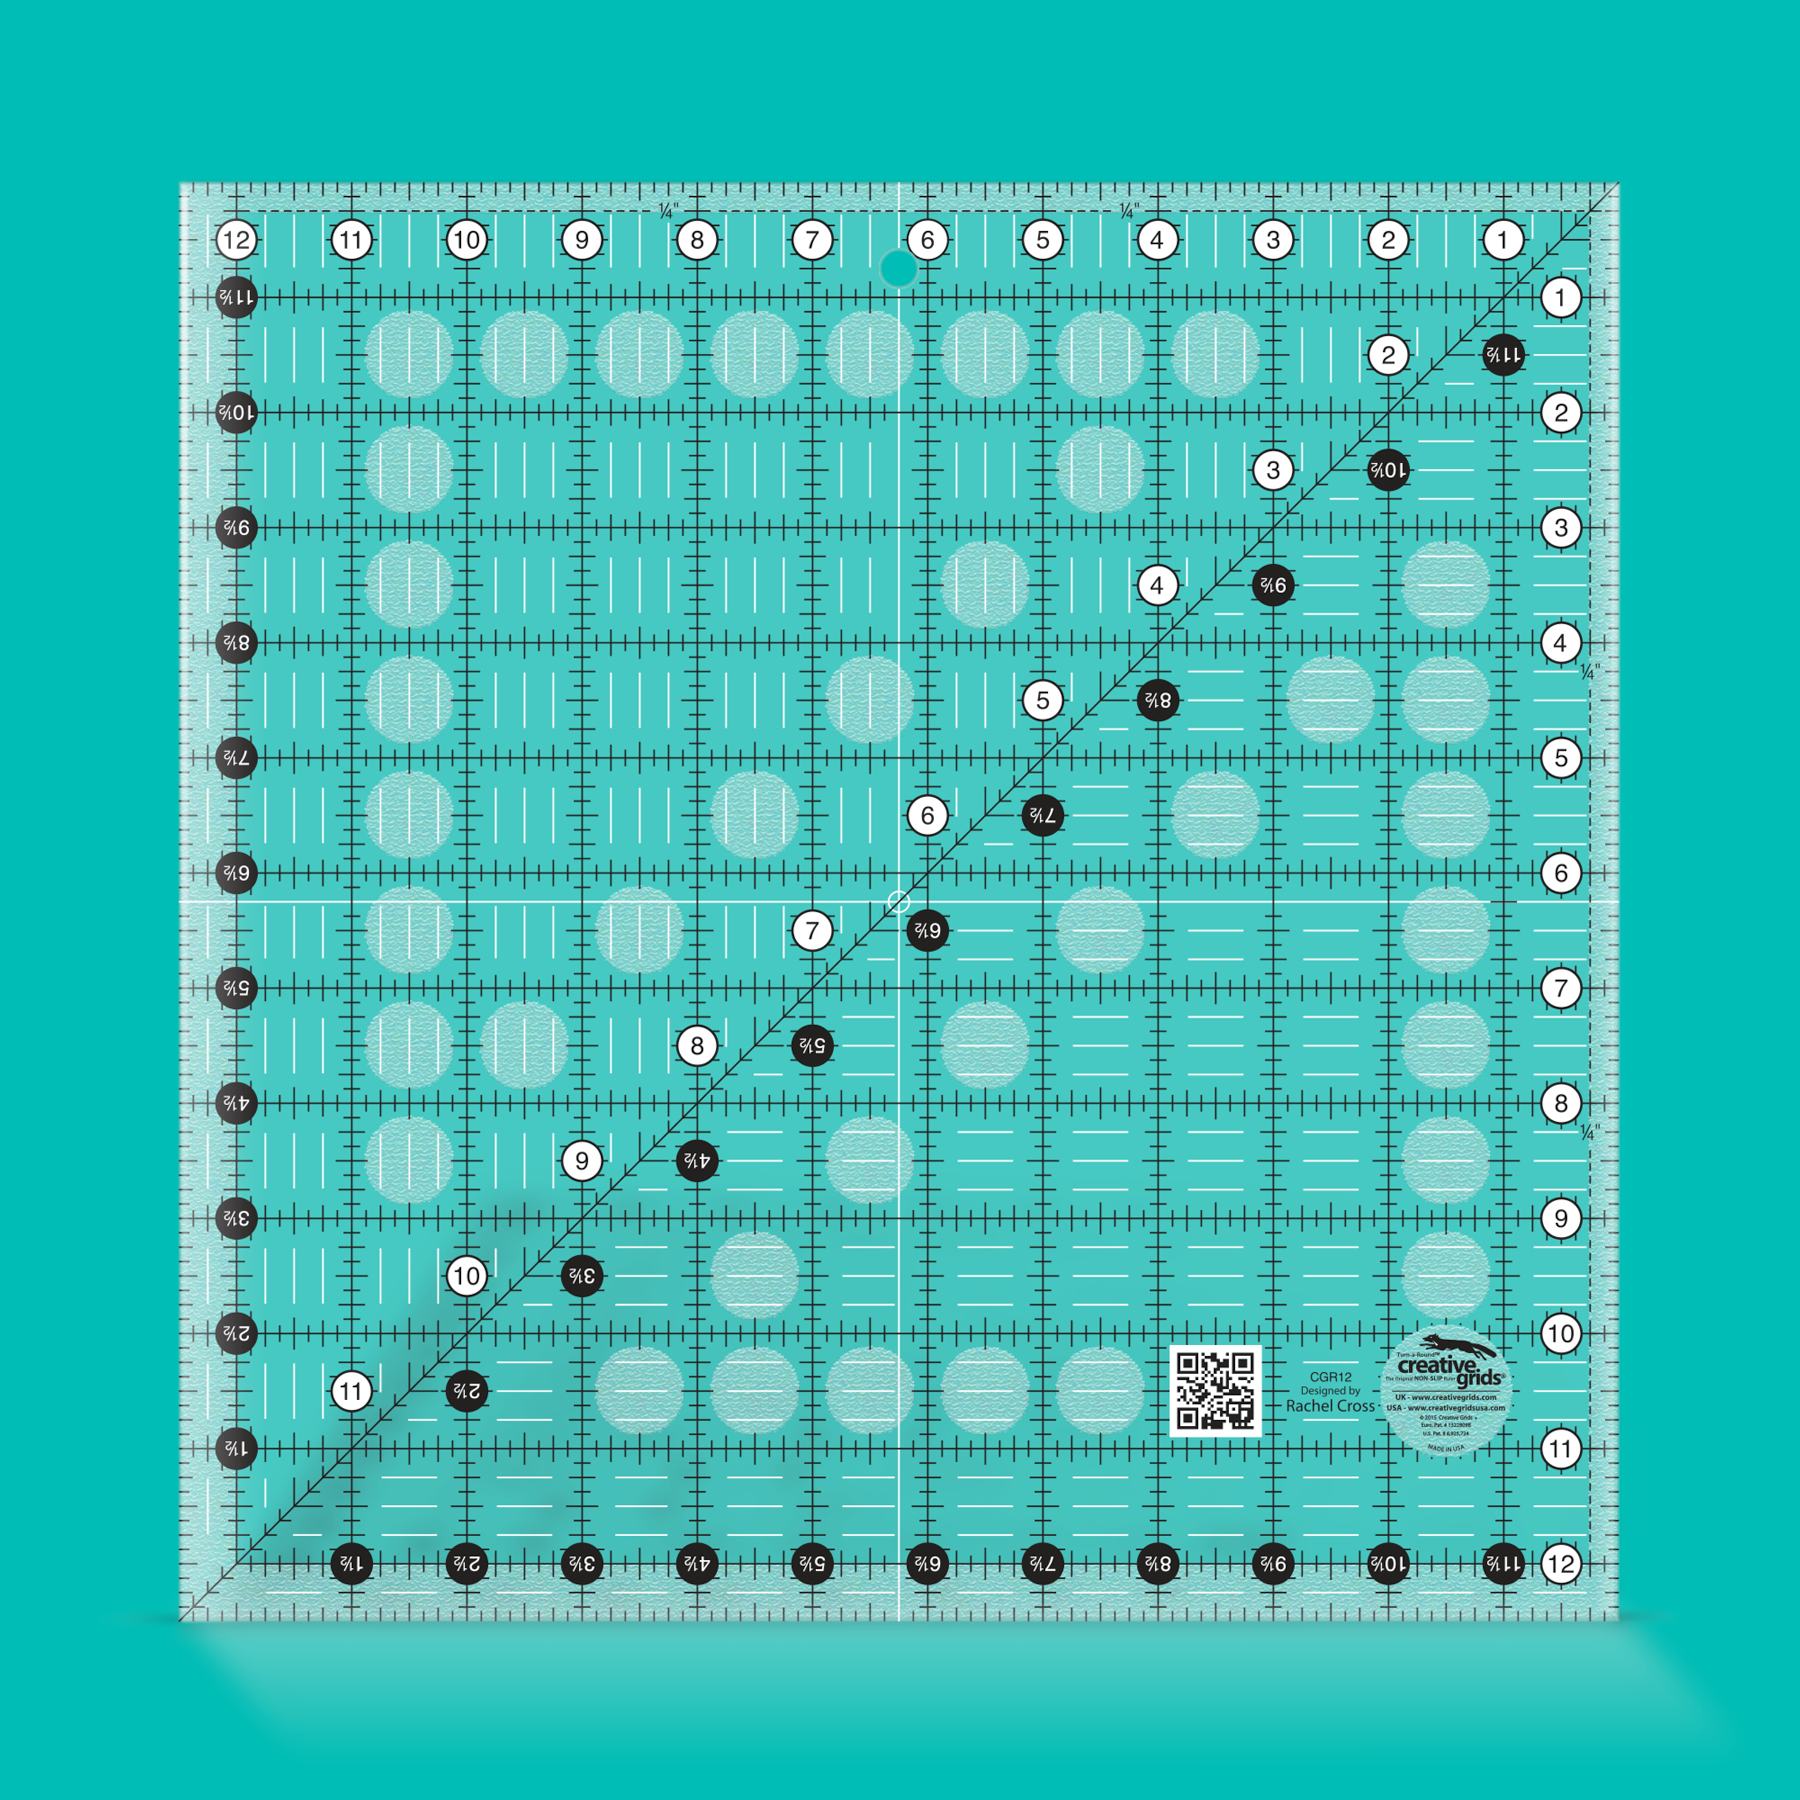 Creative Grids Ruler 12.5? by 12.5? Square CGR12